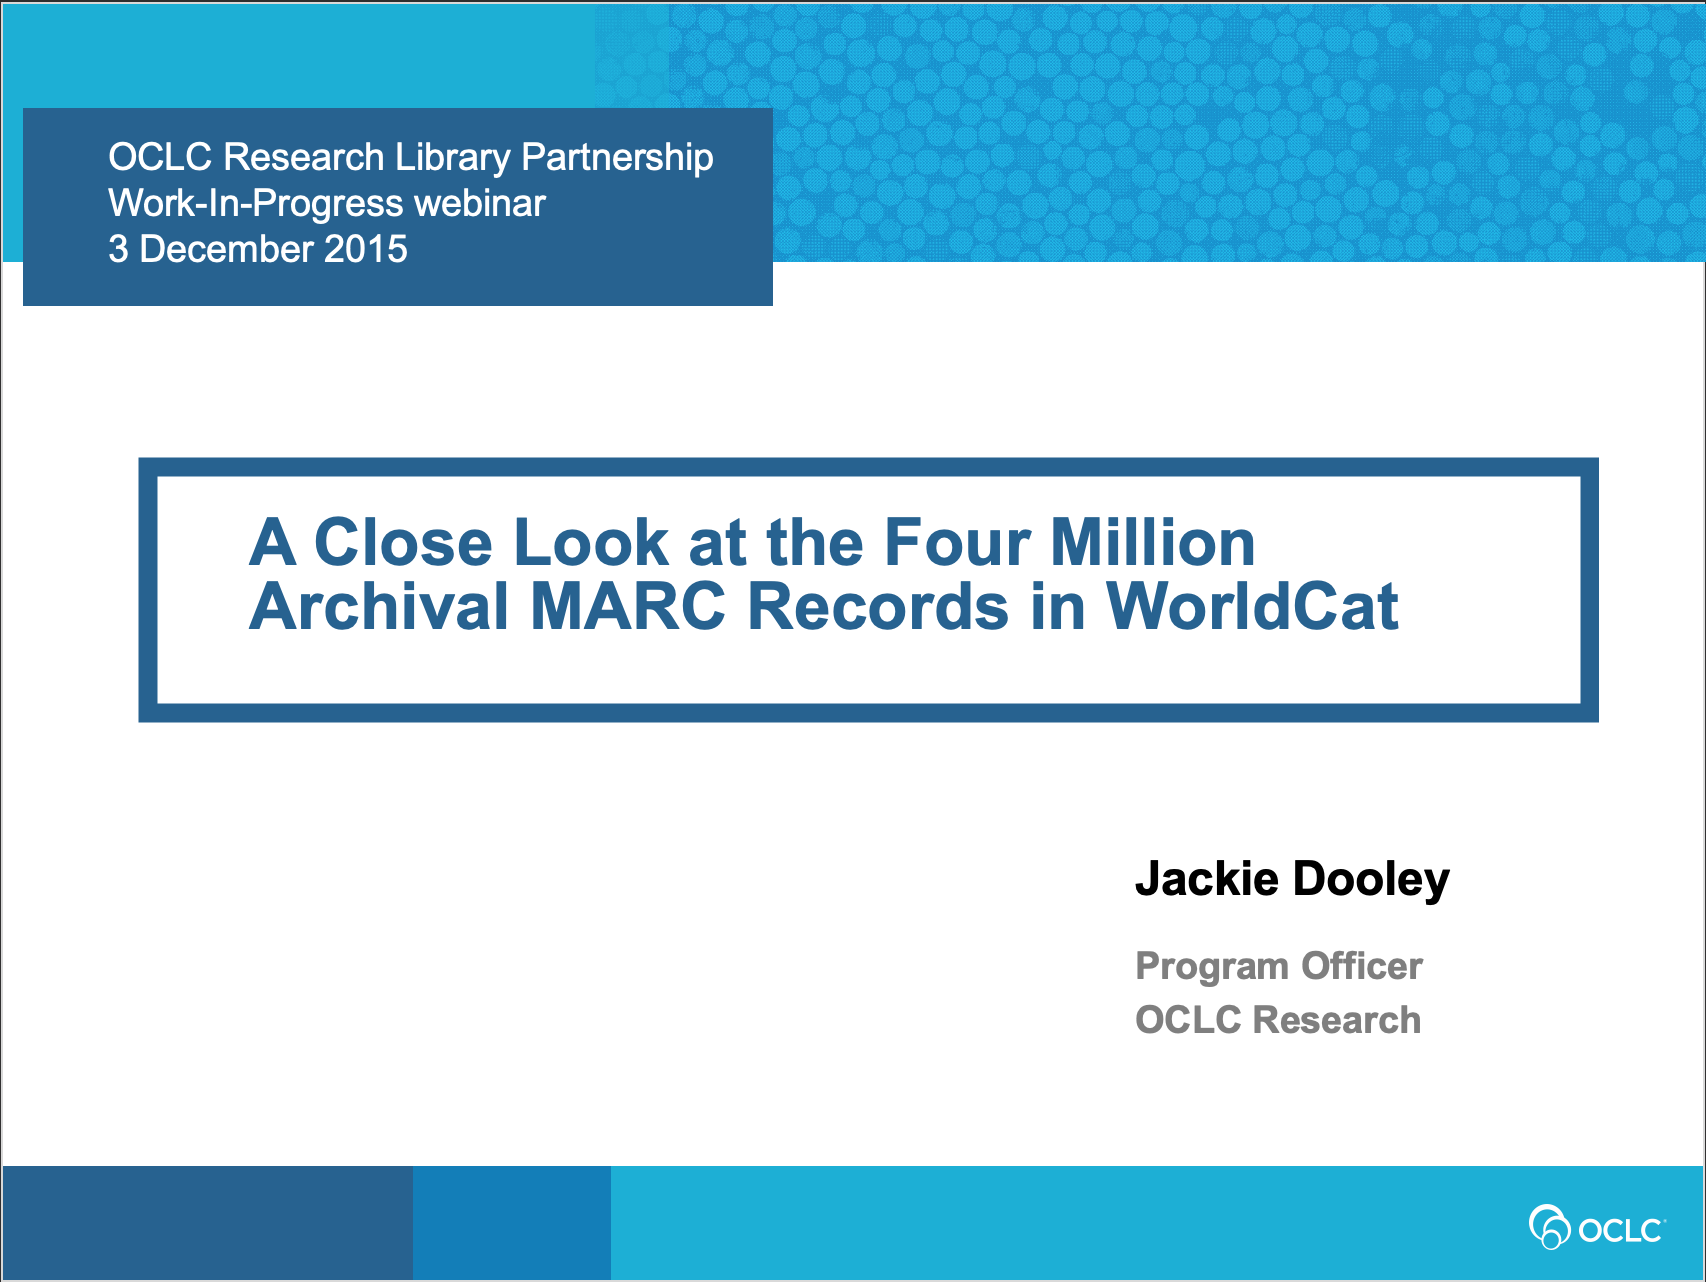 A Close Look at Archival Records in MARC